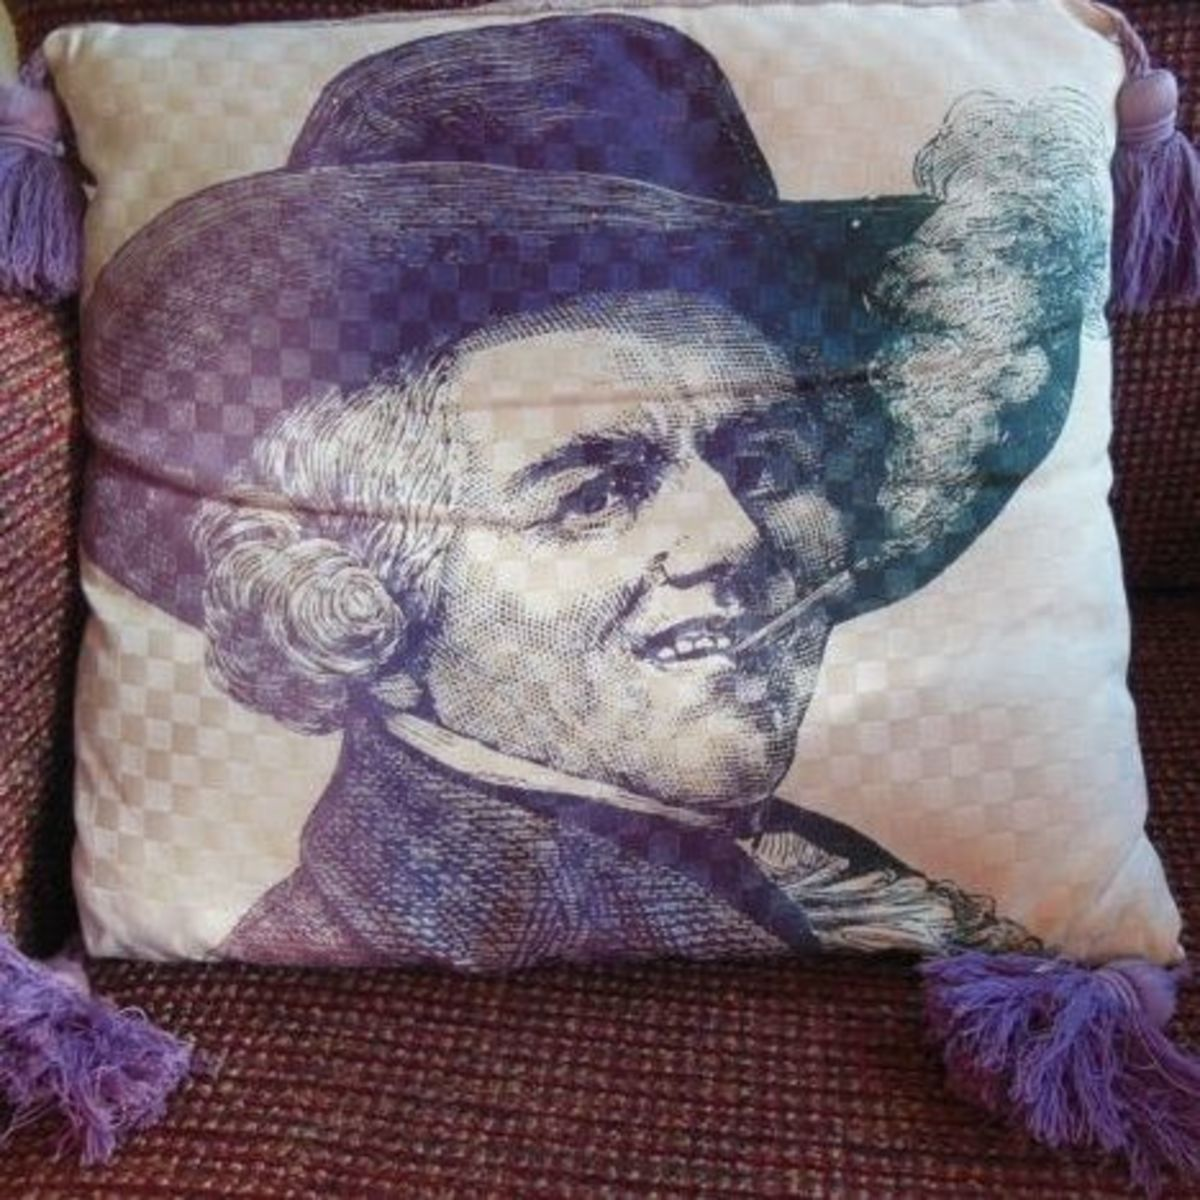 Victorian image pillow, photo by Relache